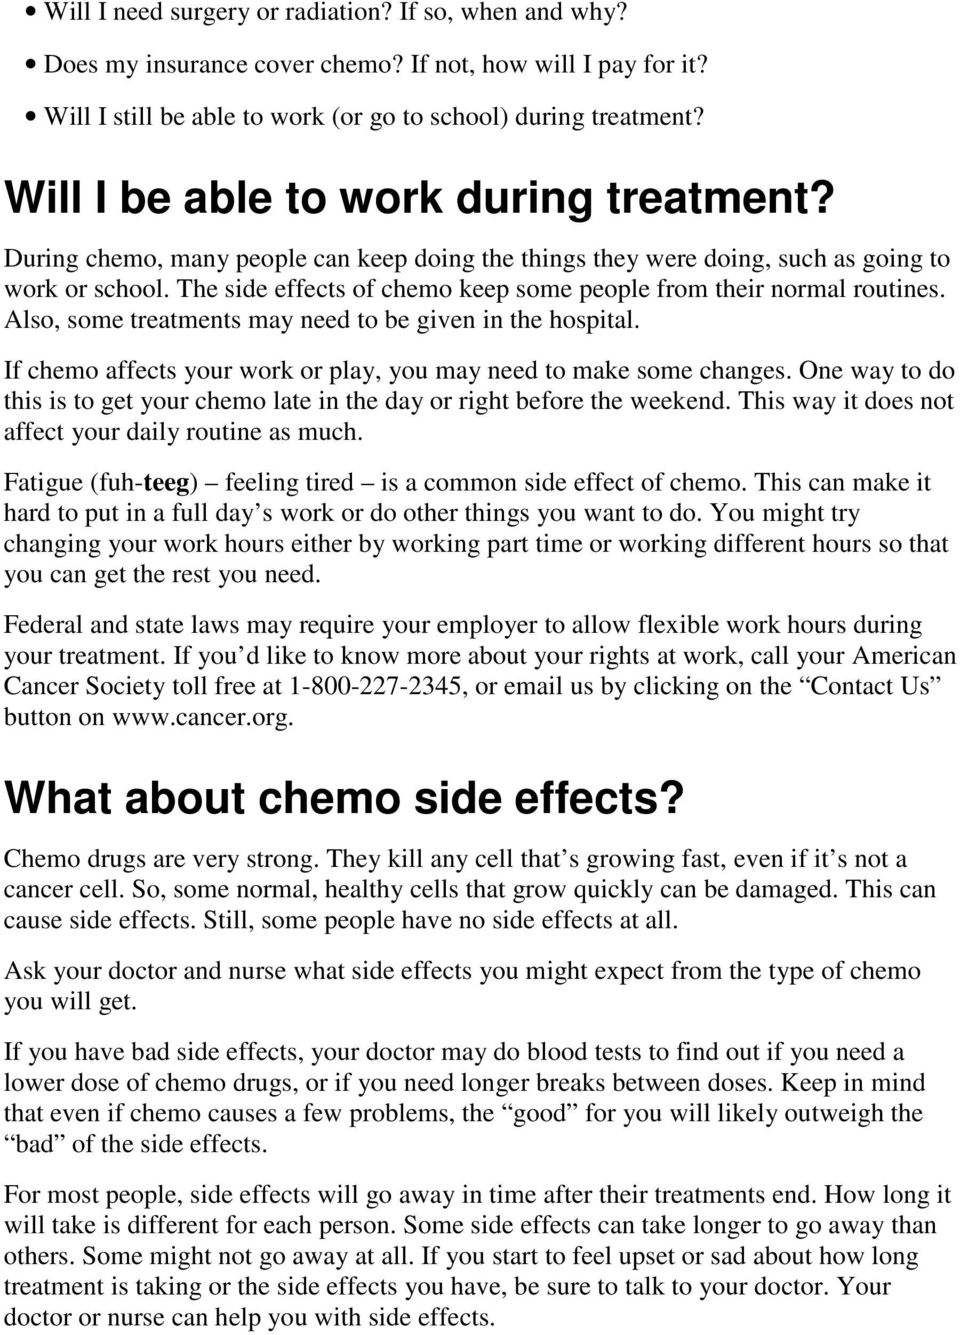 The side effects of chemo keep some people from their normal routines. Also, some treatments may need to be given in the hospital.